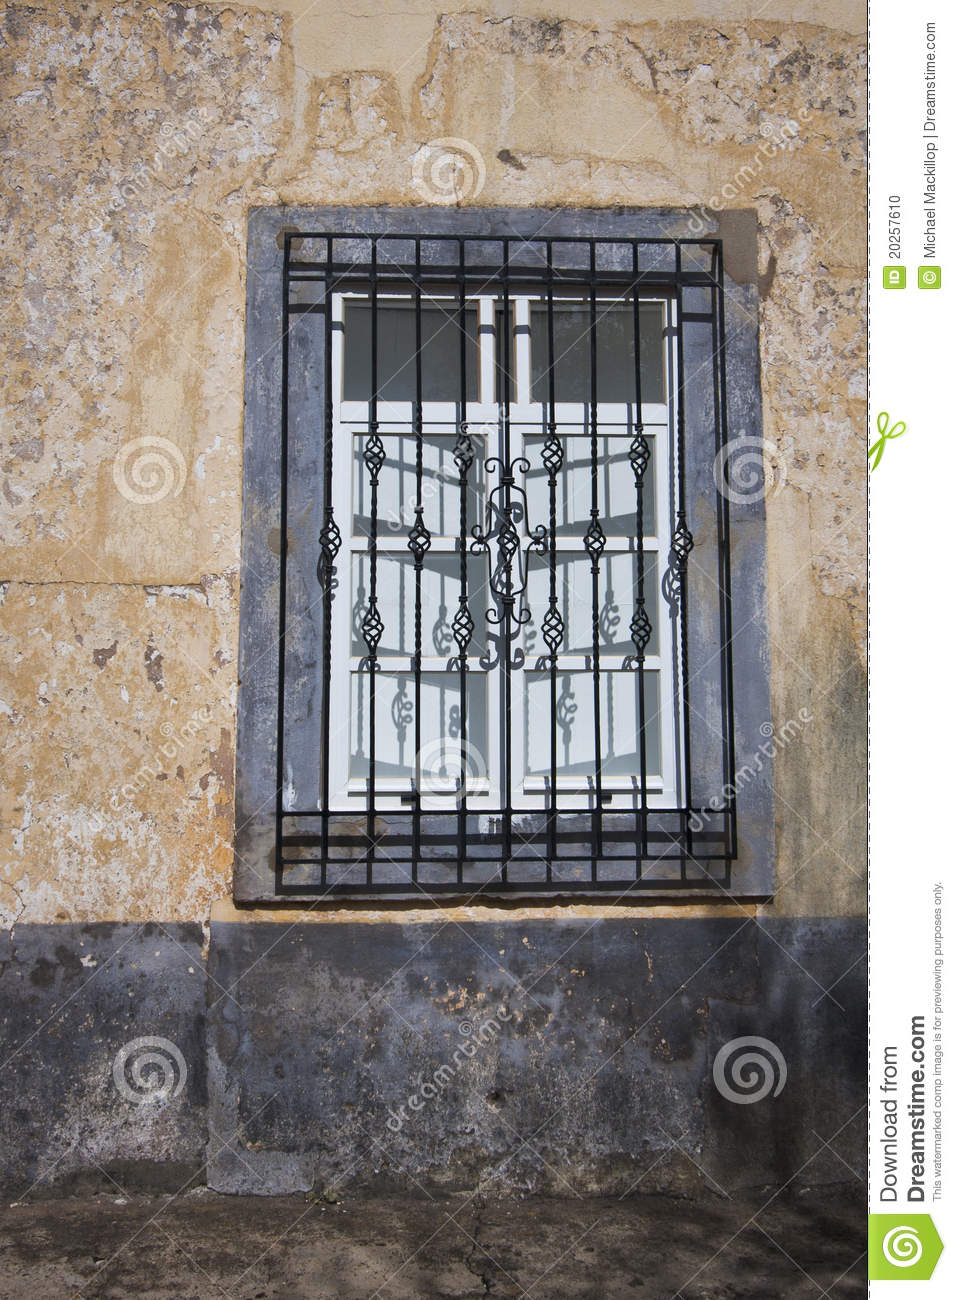 Wrought iron window grille stock photo image of